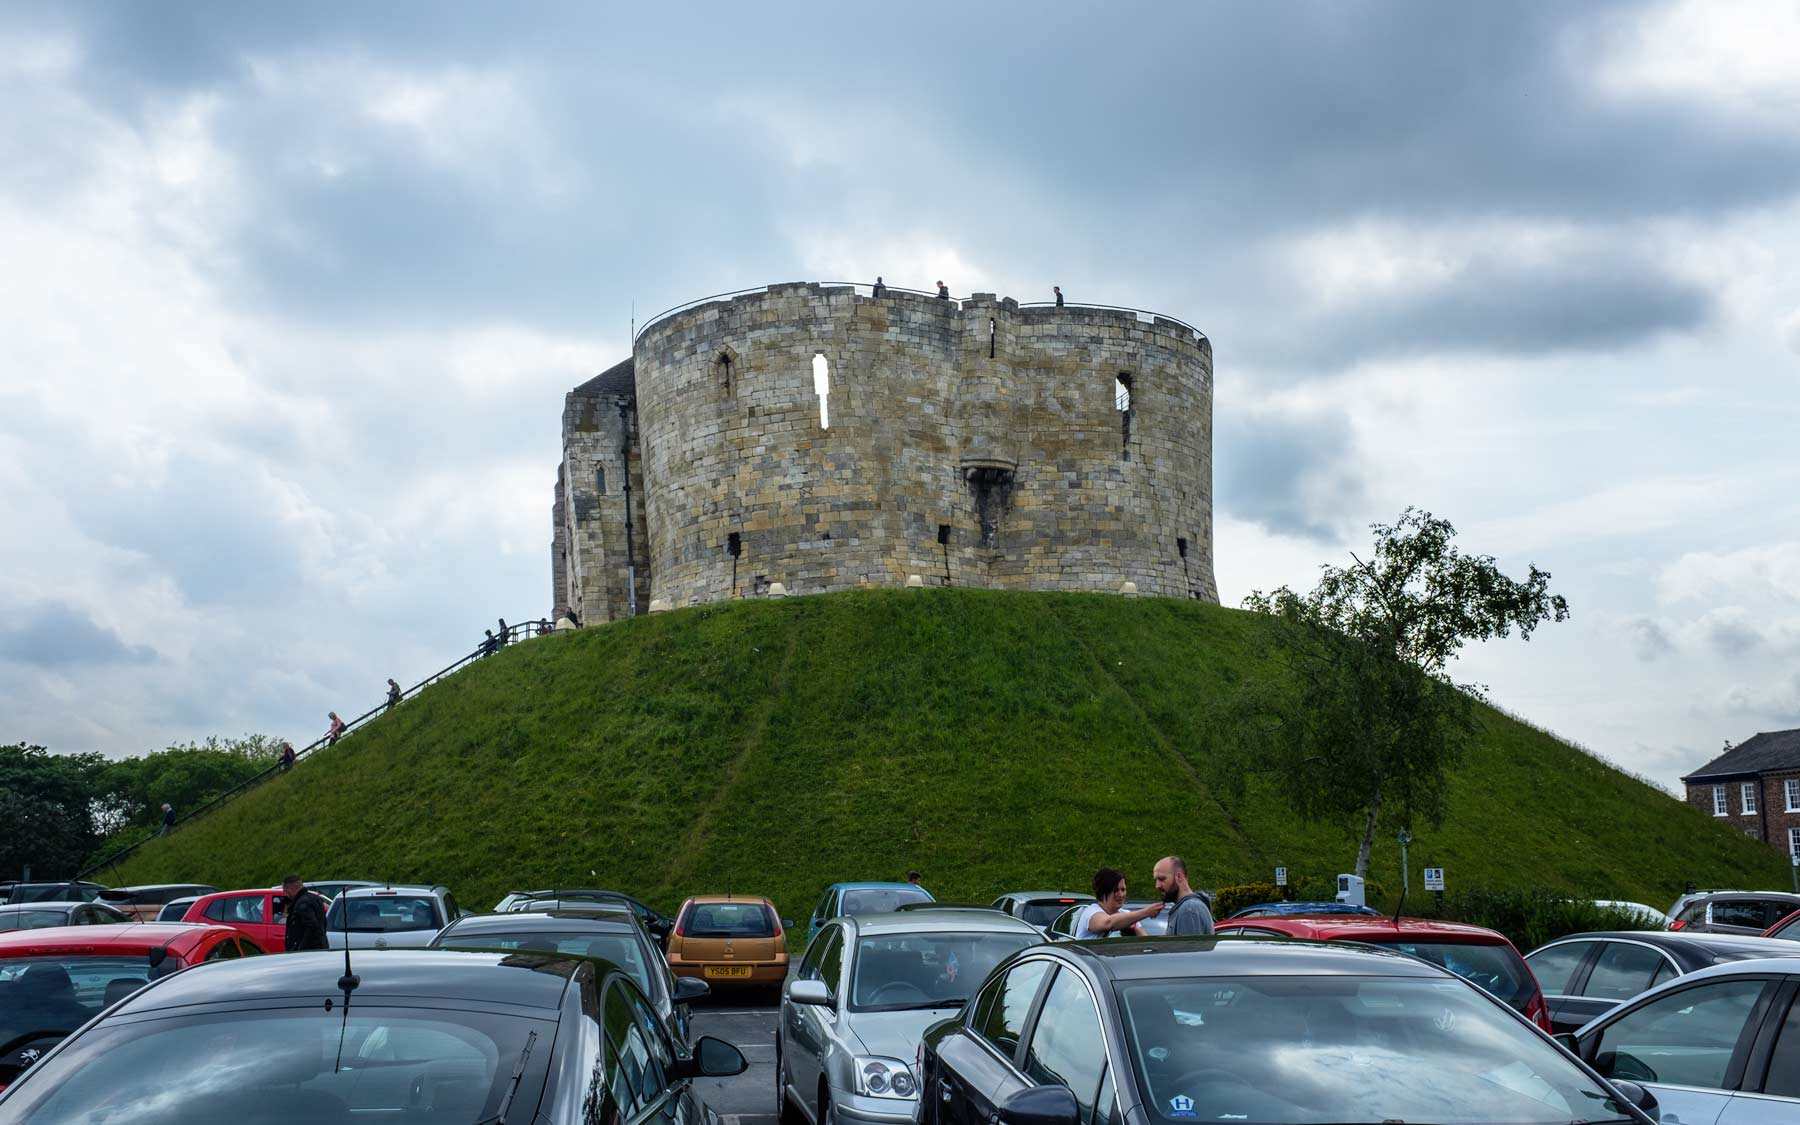 Clifford's Tower alongside the Coppergate Shopping Centre carpark.